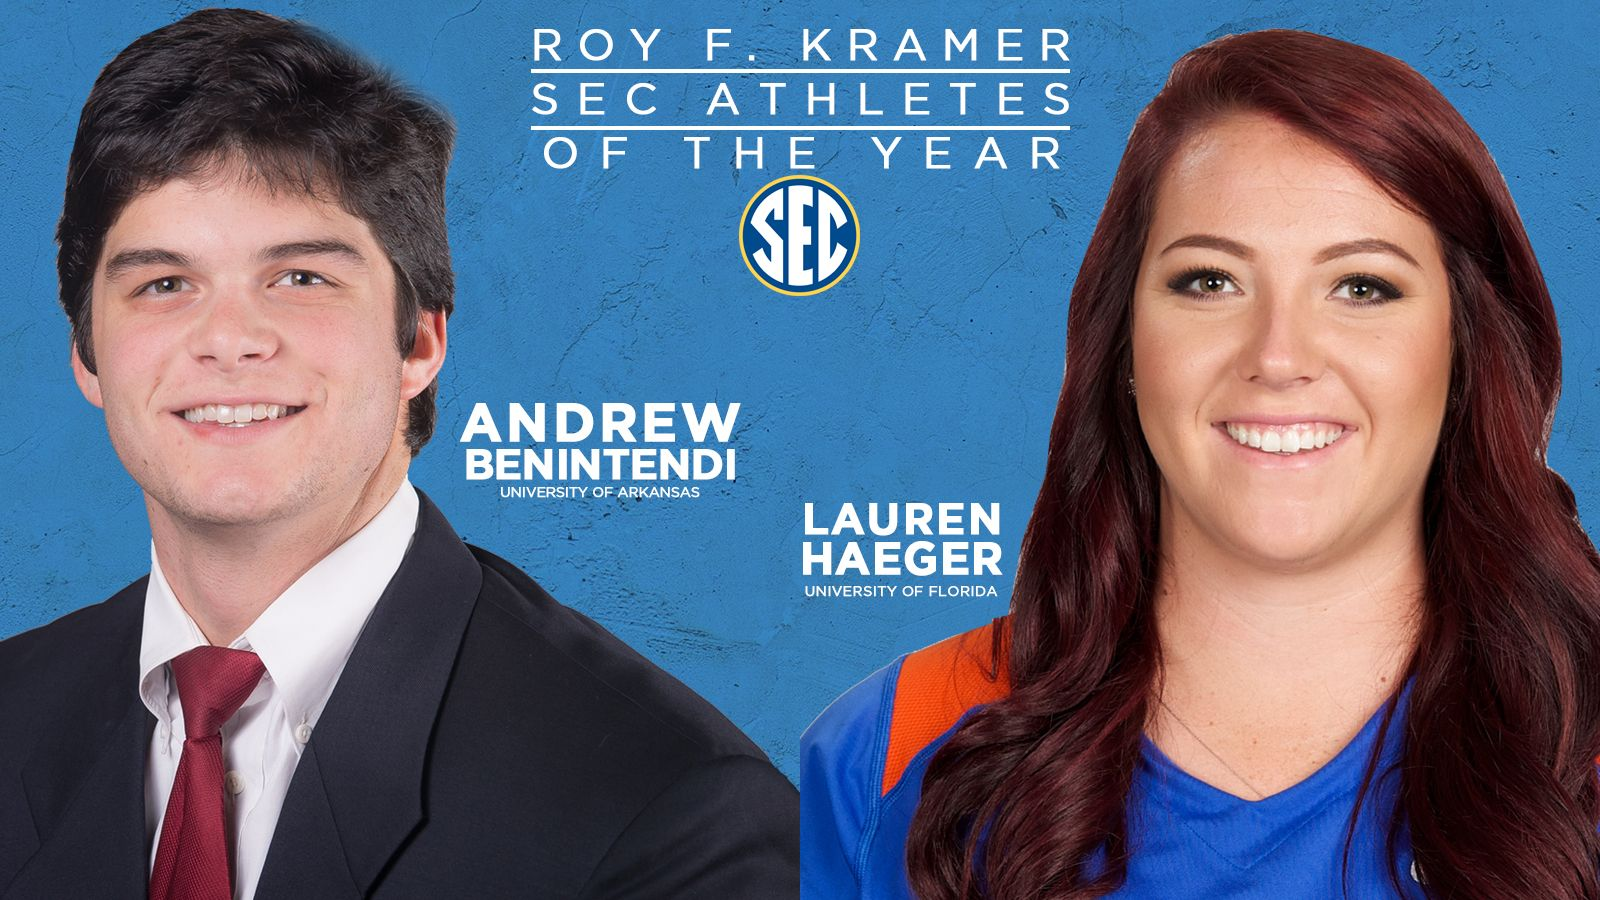 SEC Athletes of the Year